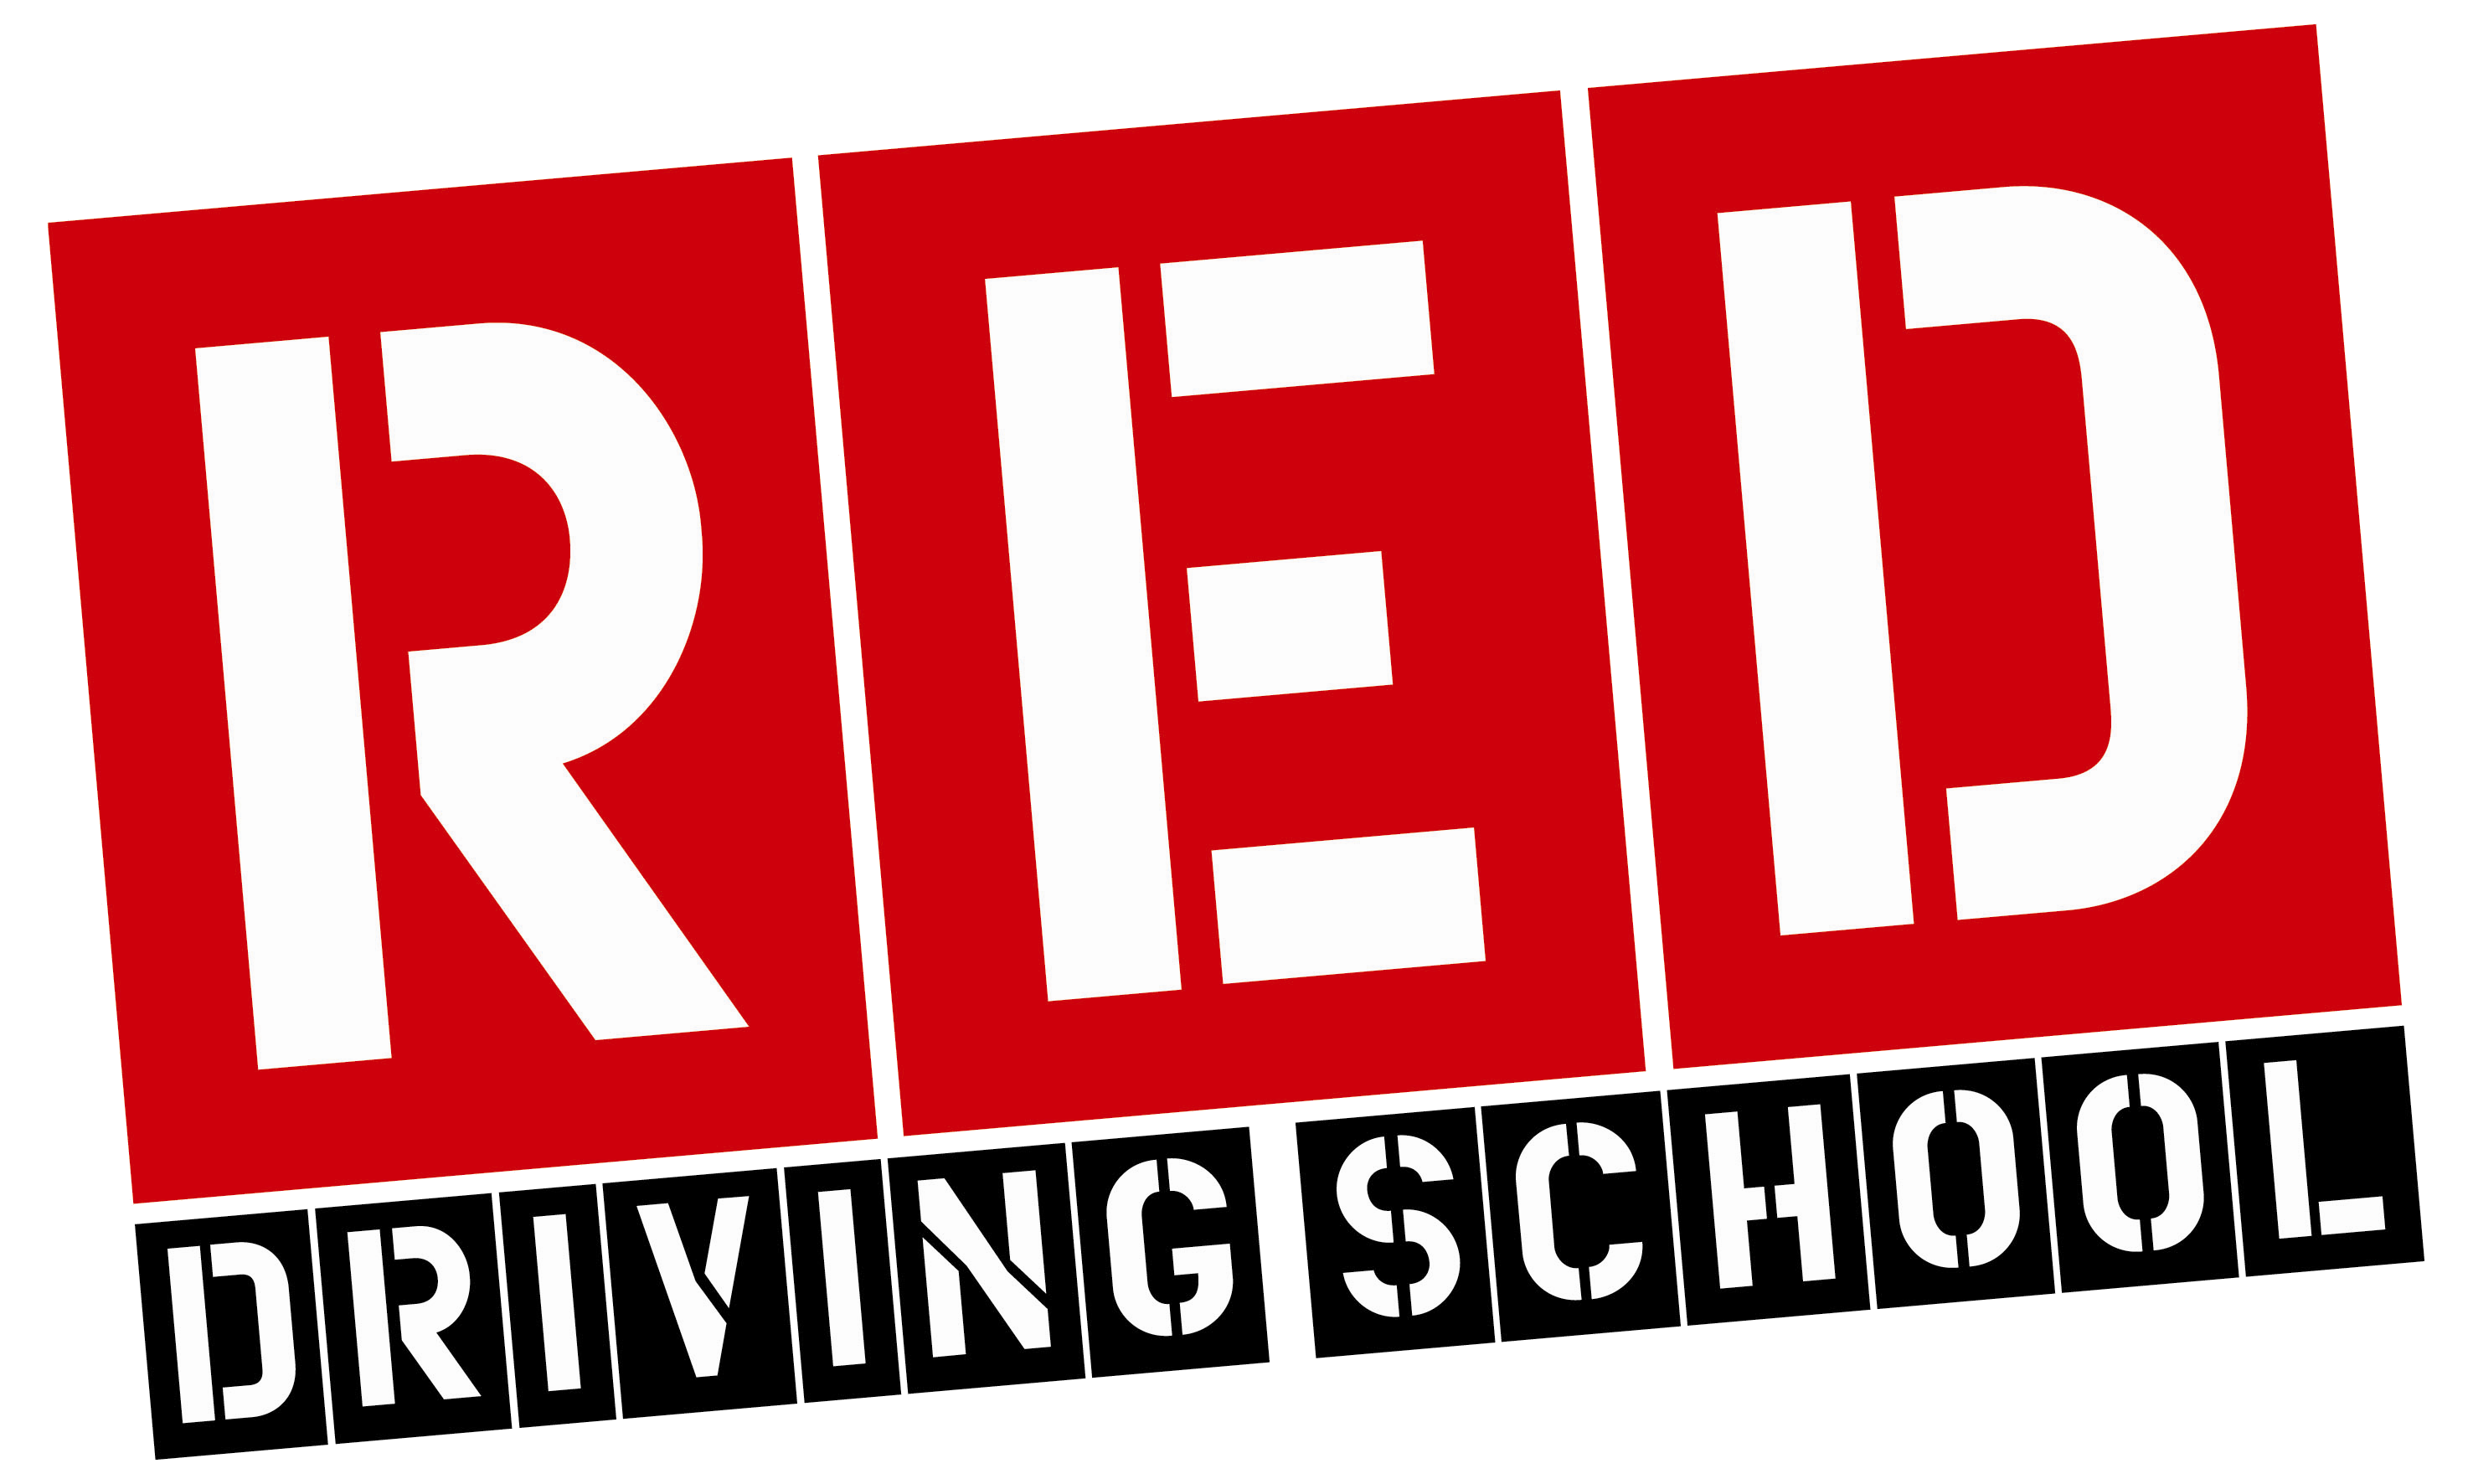 Red driving school logo